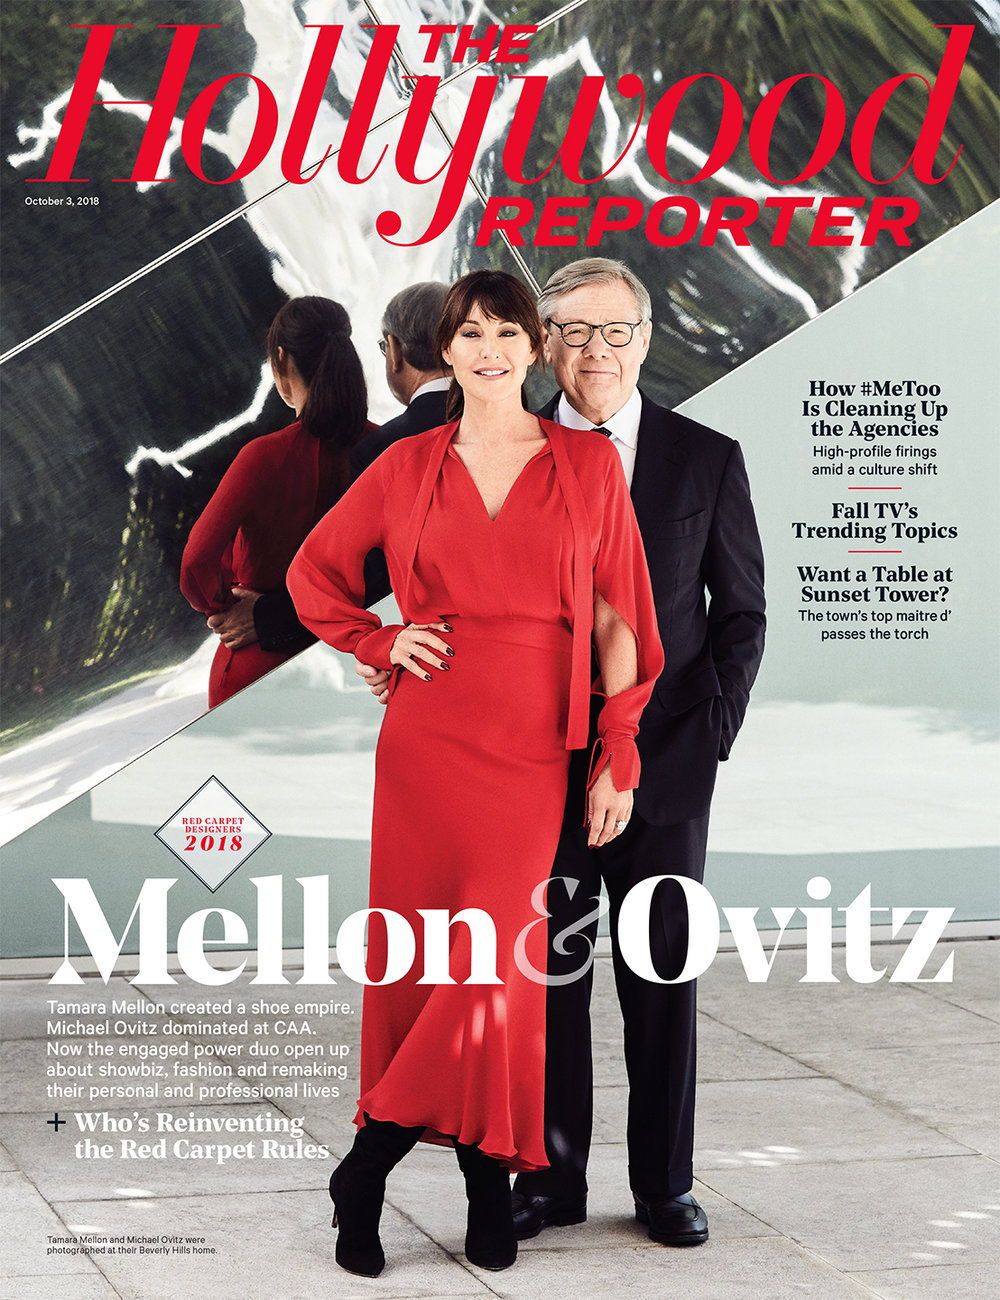 2018-10-03_MAN_HOLLYWOODREPORTER_01.jpg